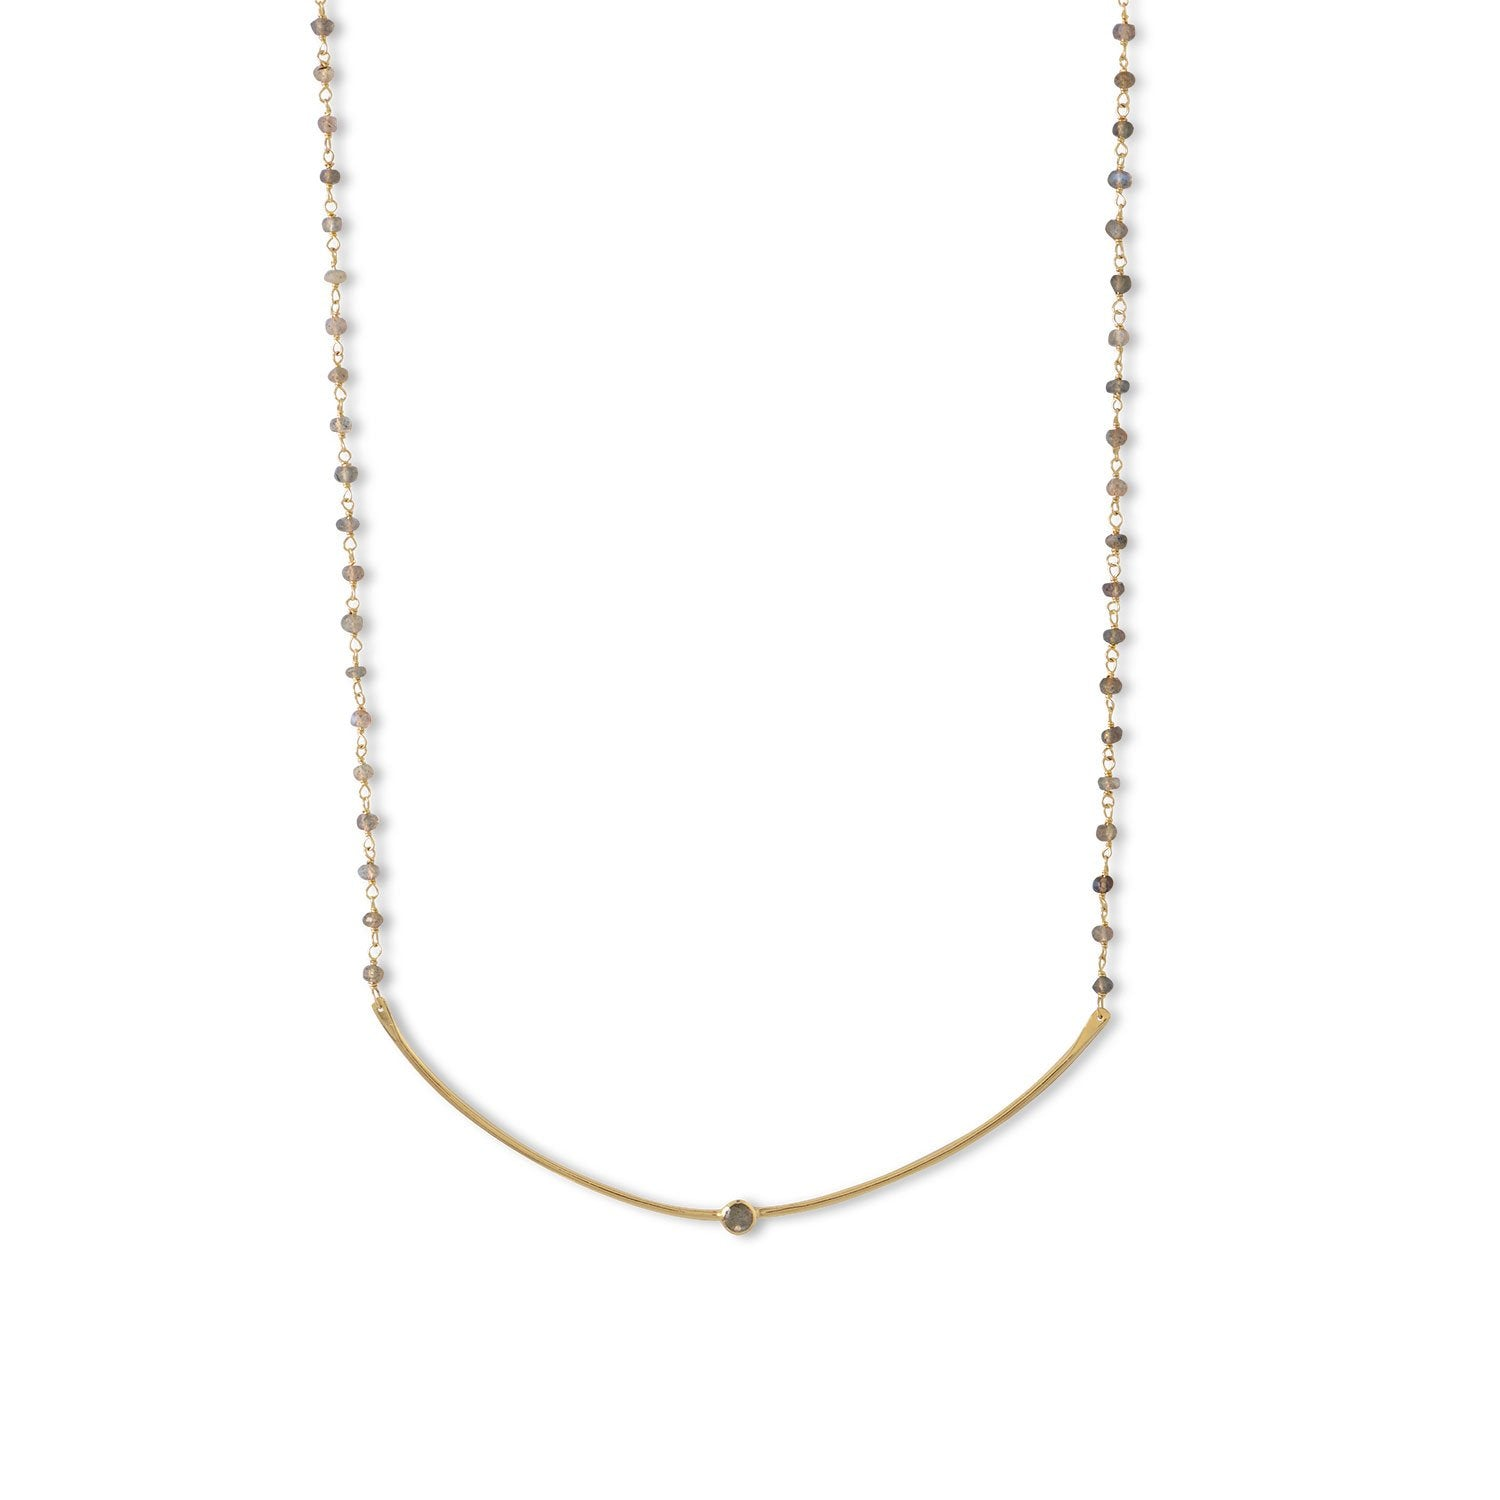 14 Karat Gold Plated Labradorite Bead and Curved Bar Necklace - Rocky Mt. Discount Outlet